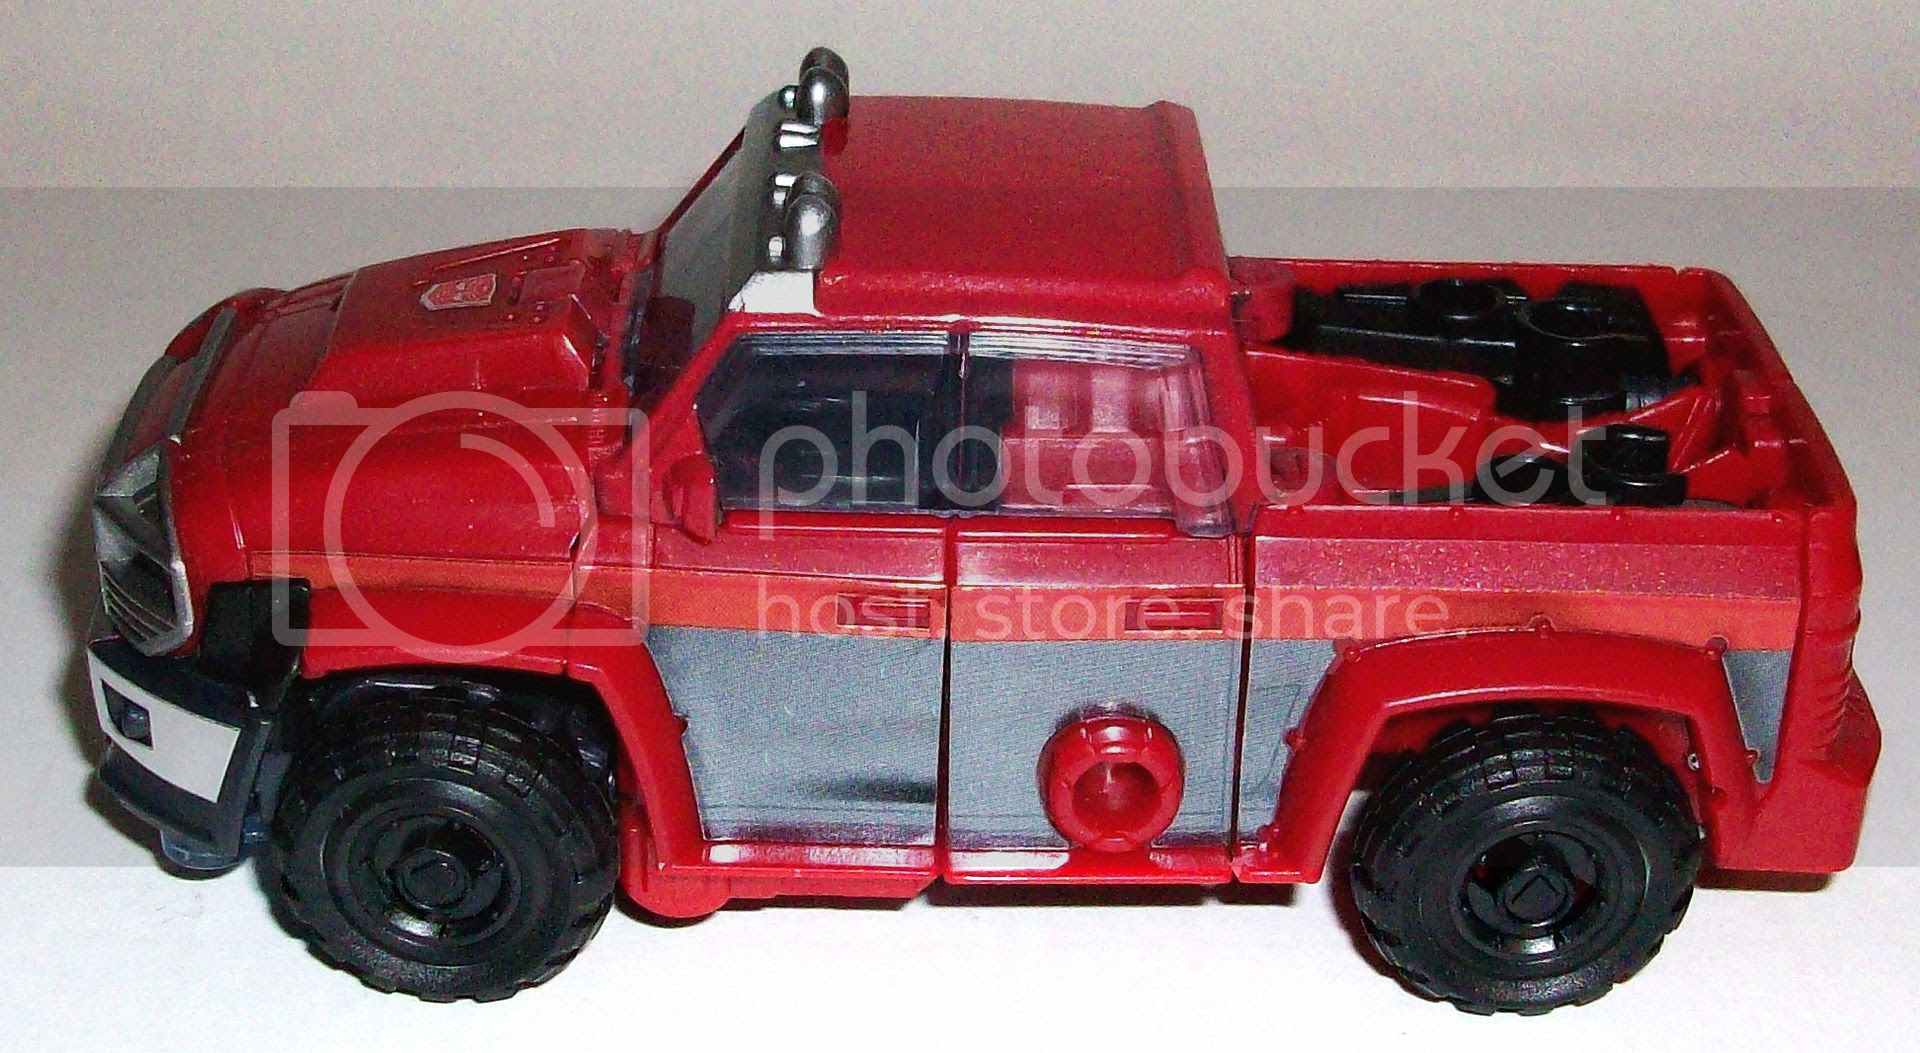 Ironhide AM-20 photo 191_zps8b9be0fd.jpg